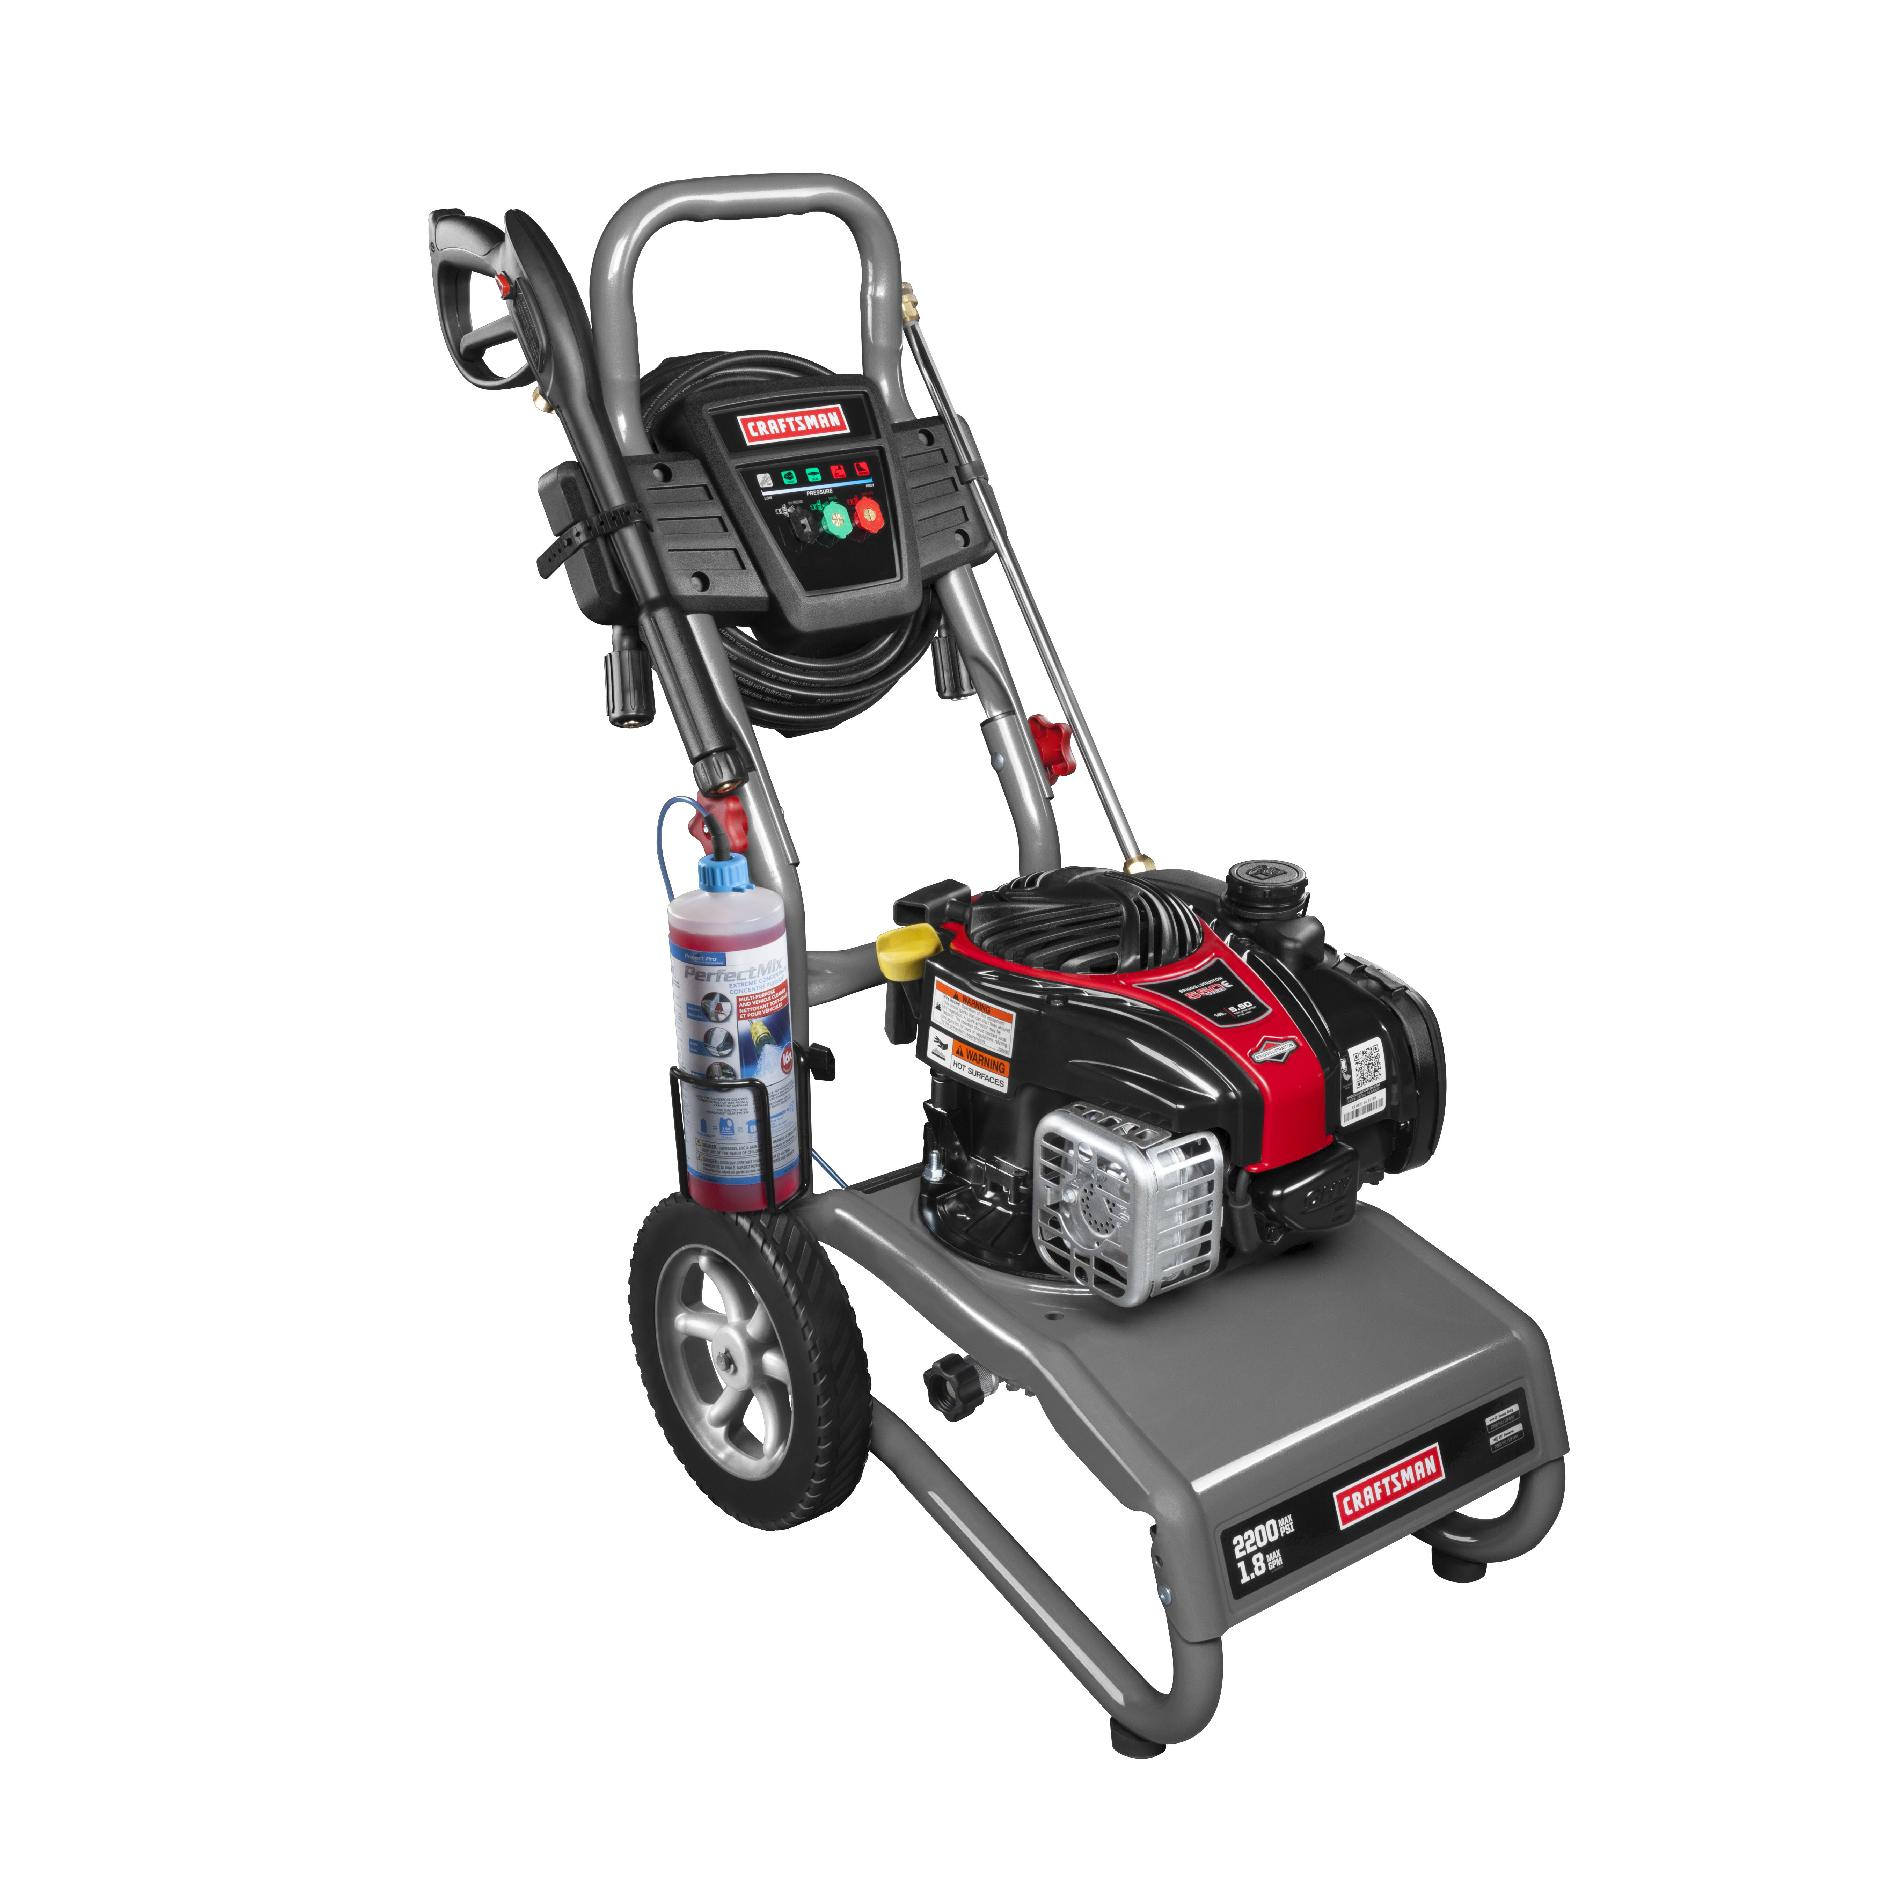 Craftsman 2200 PSI, 1.9 GPM Gas Powered Pressure Washer